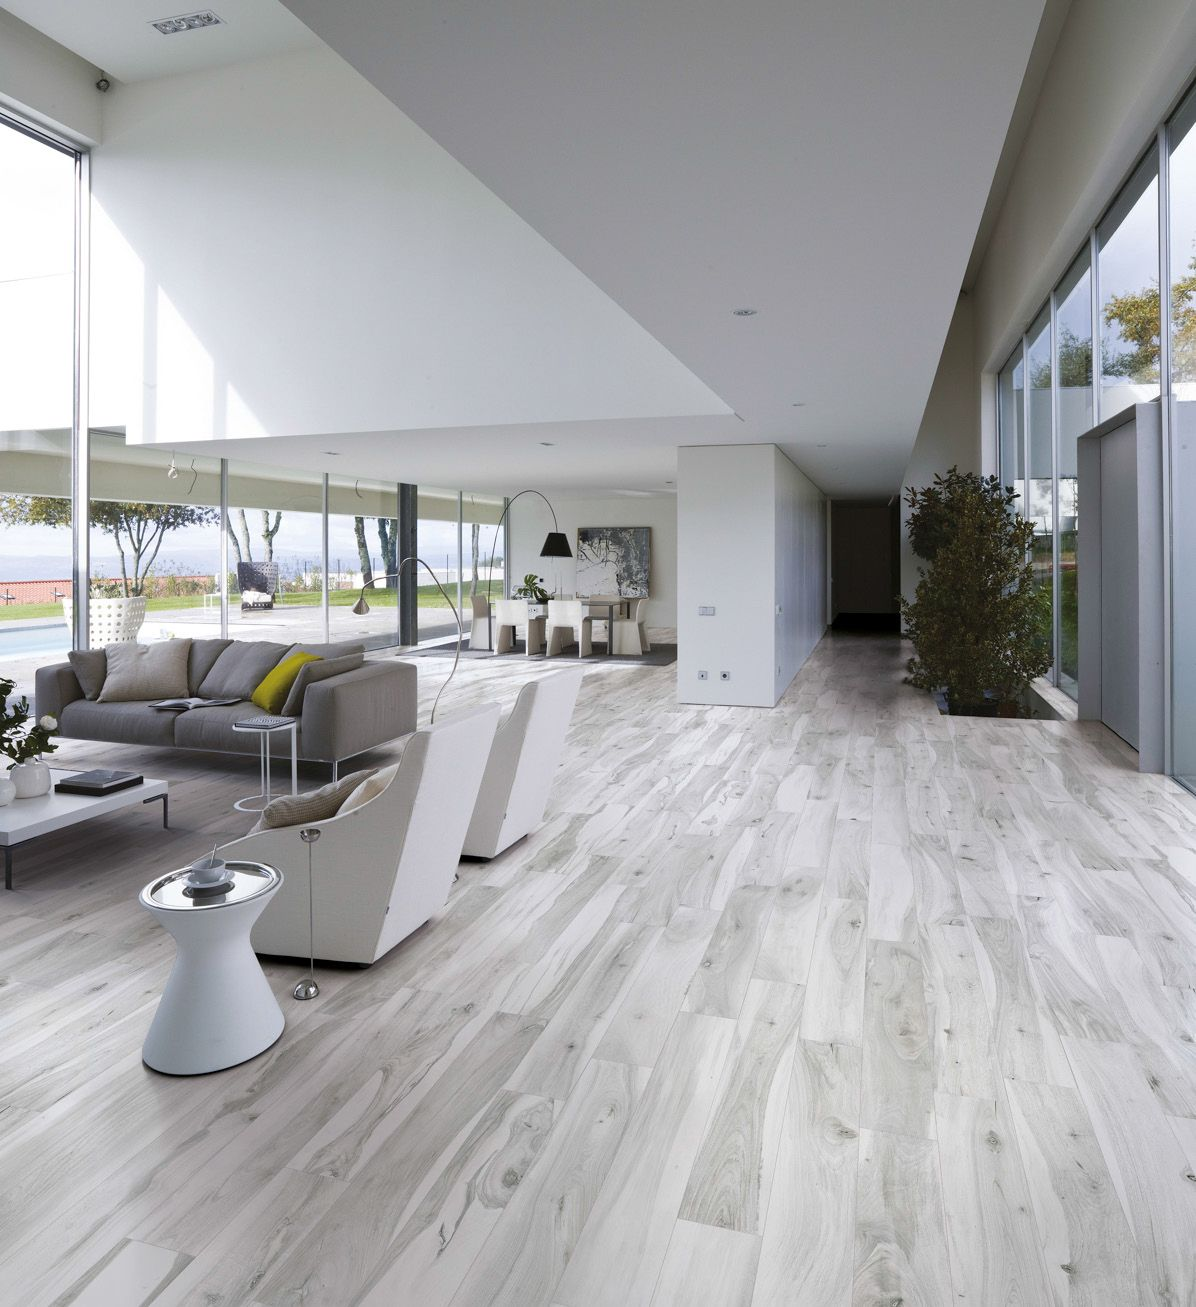 Wood Look Tile  17 Distressed  Rustic  Modern Ideas   Flooring     The wood look tile trend is going strong  and we ve discovered some amazing